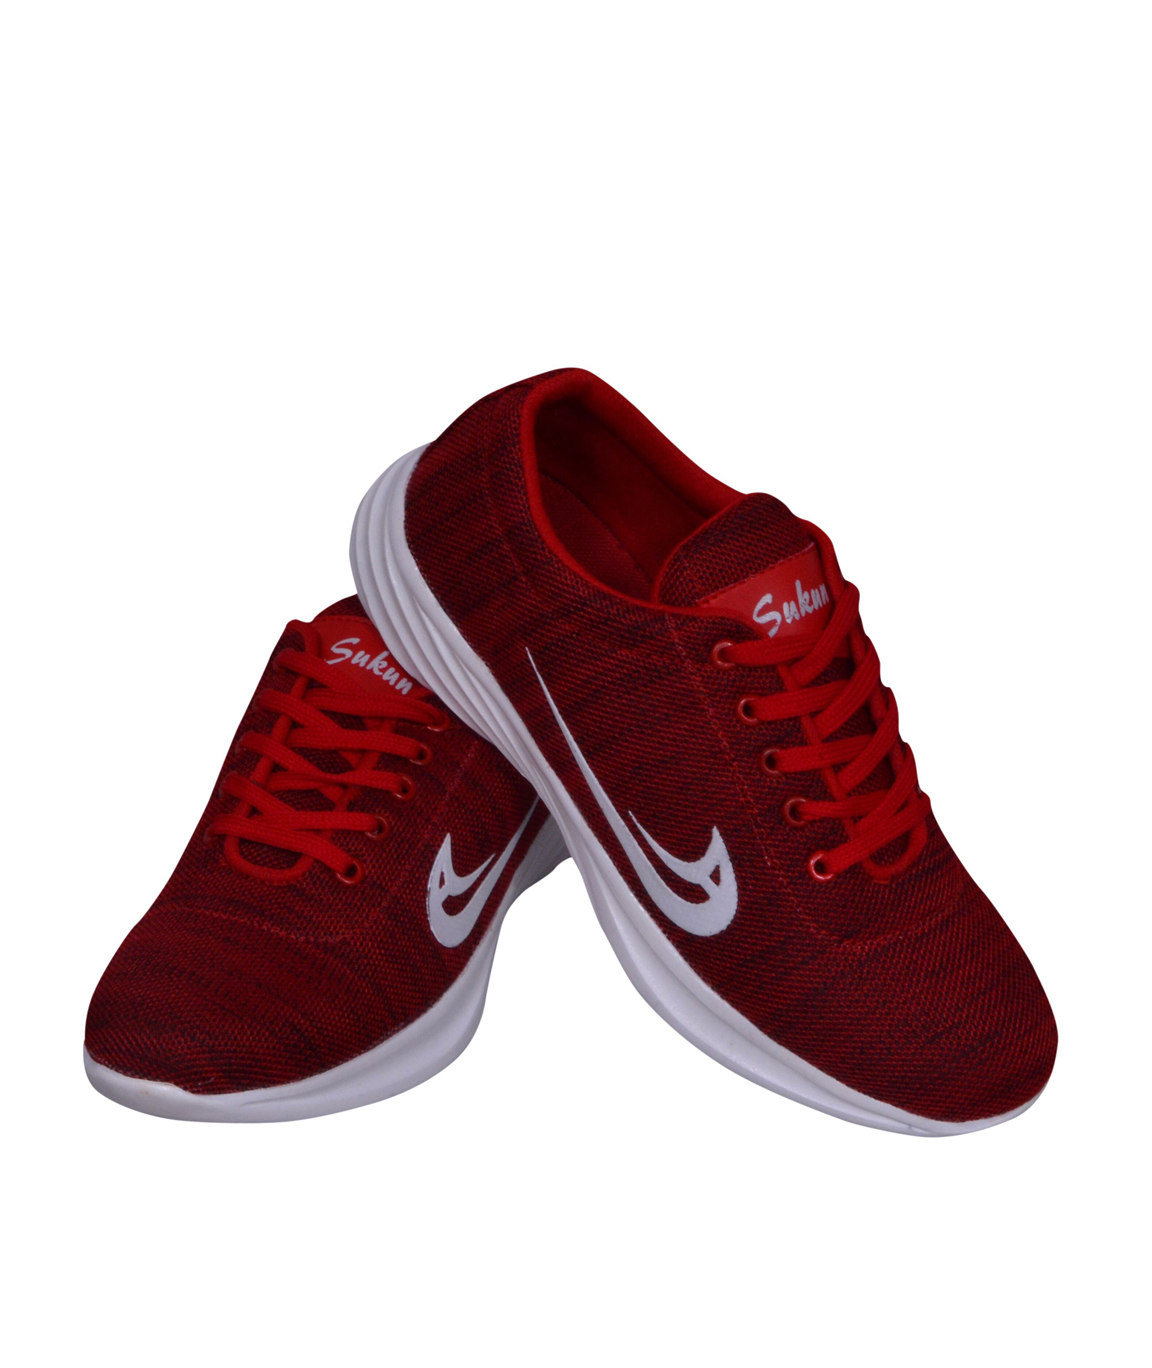 SukunSports Sneaker Shoes-RED